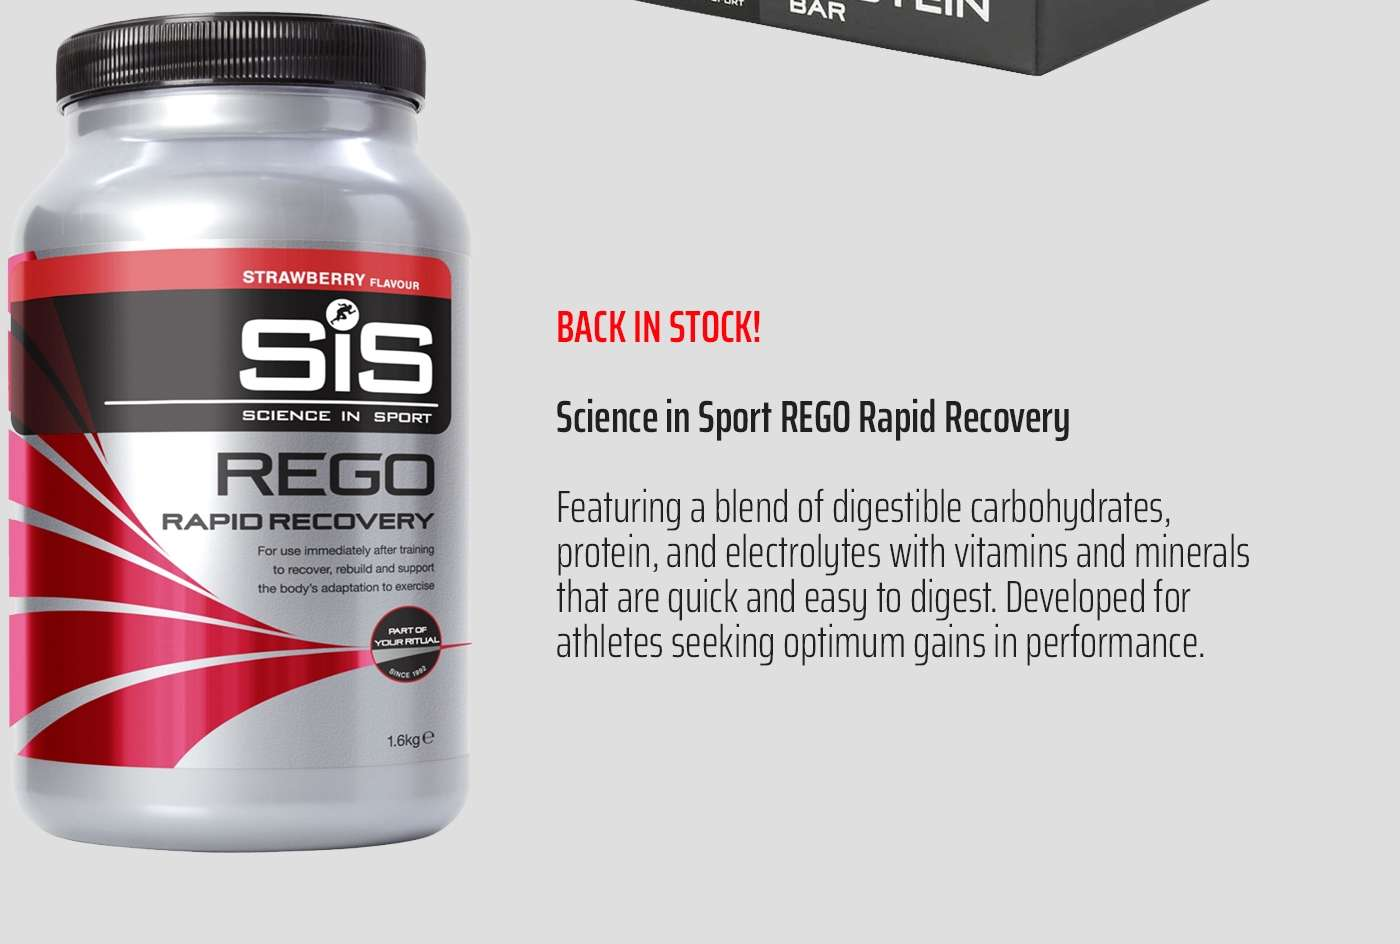 Science in Sport REGO Rapid Recovery